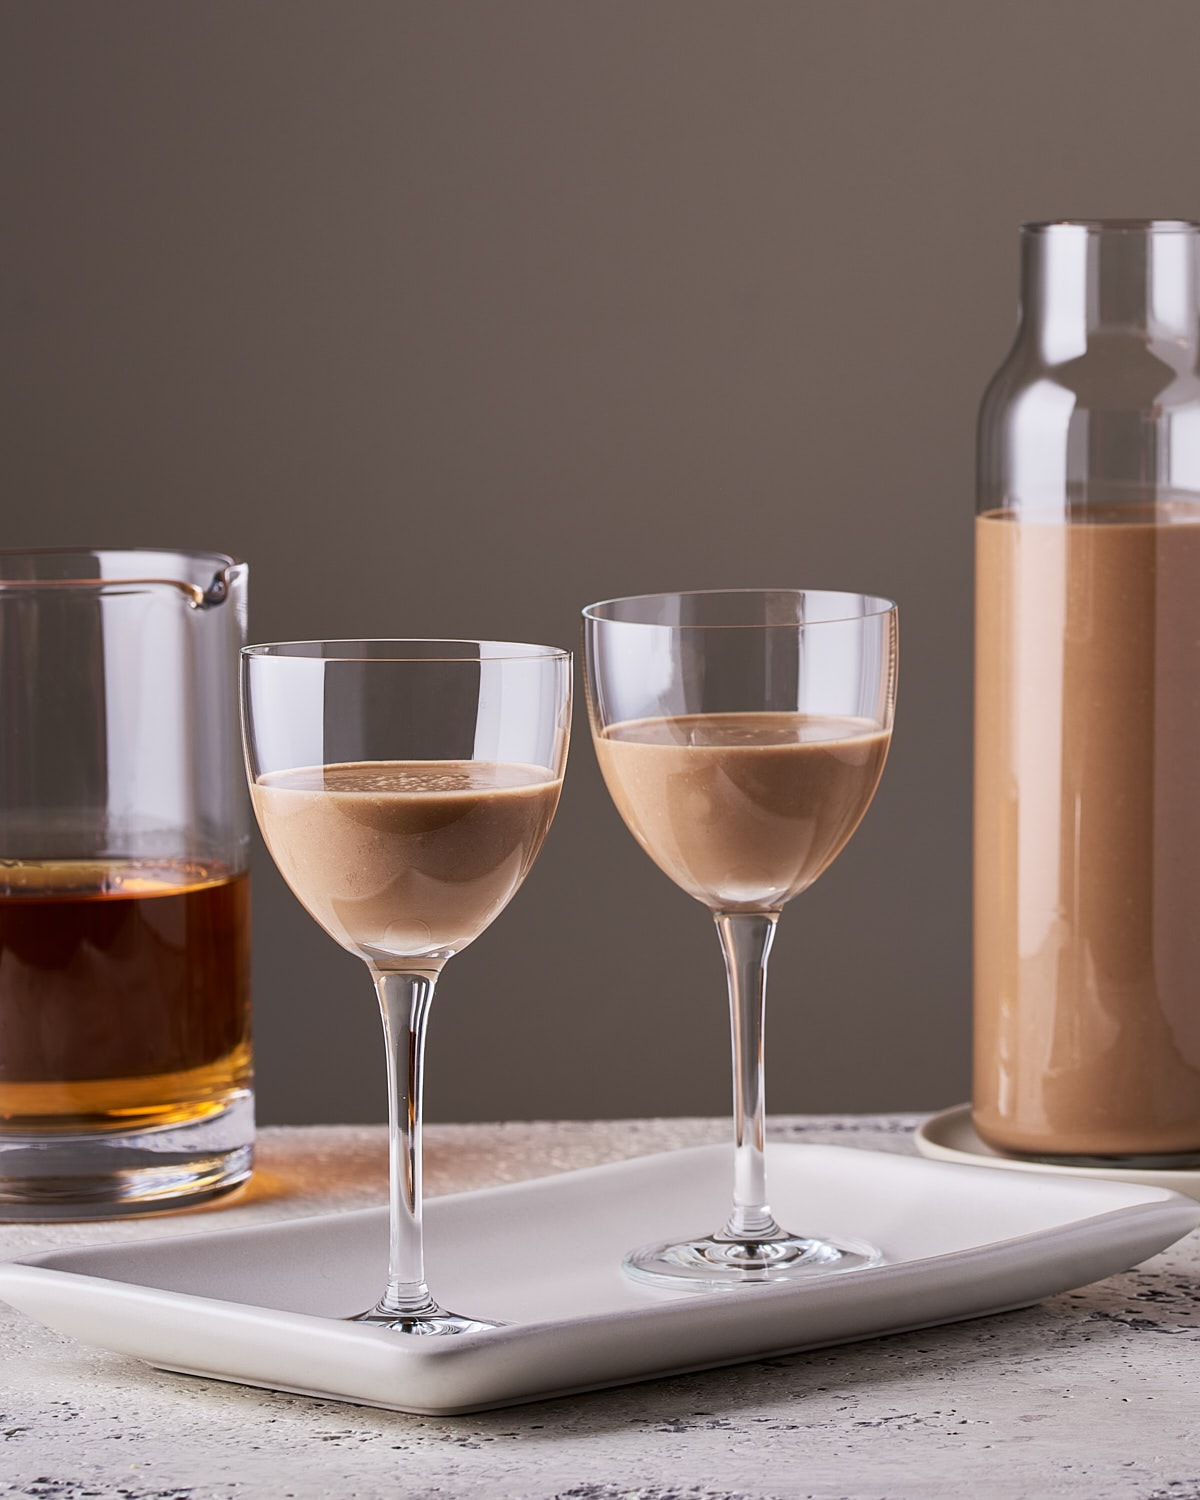 side view of 2 glasses of Irish cream with 2 glass bottles